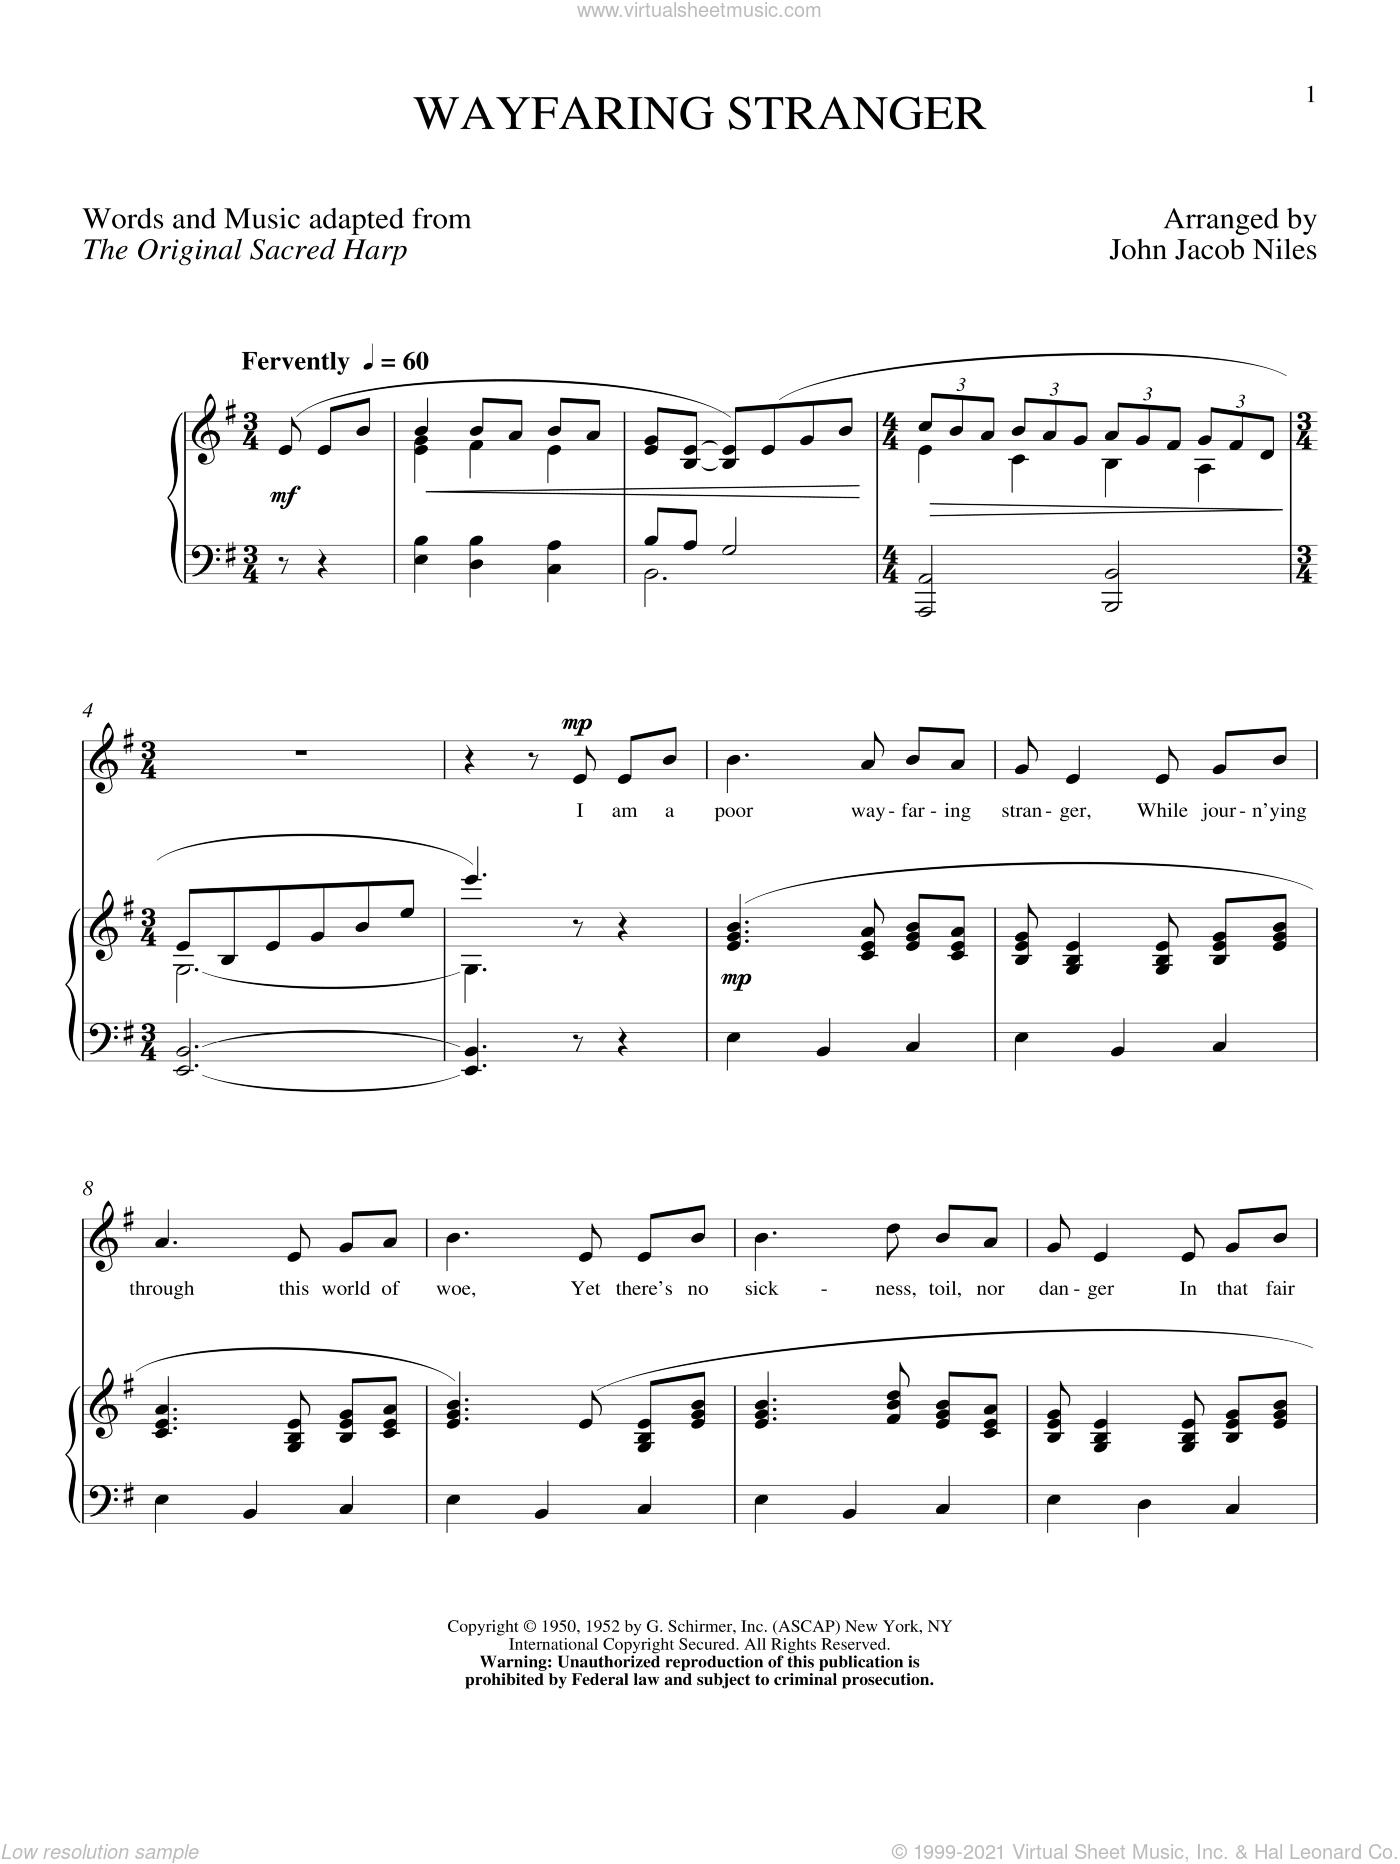 Wayfaring Stranger sheet music for voice and piano (High ) by John Jacob Niles